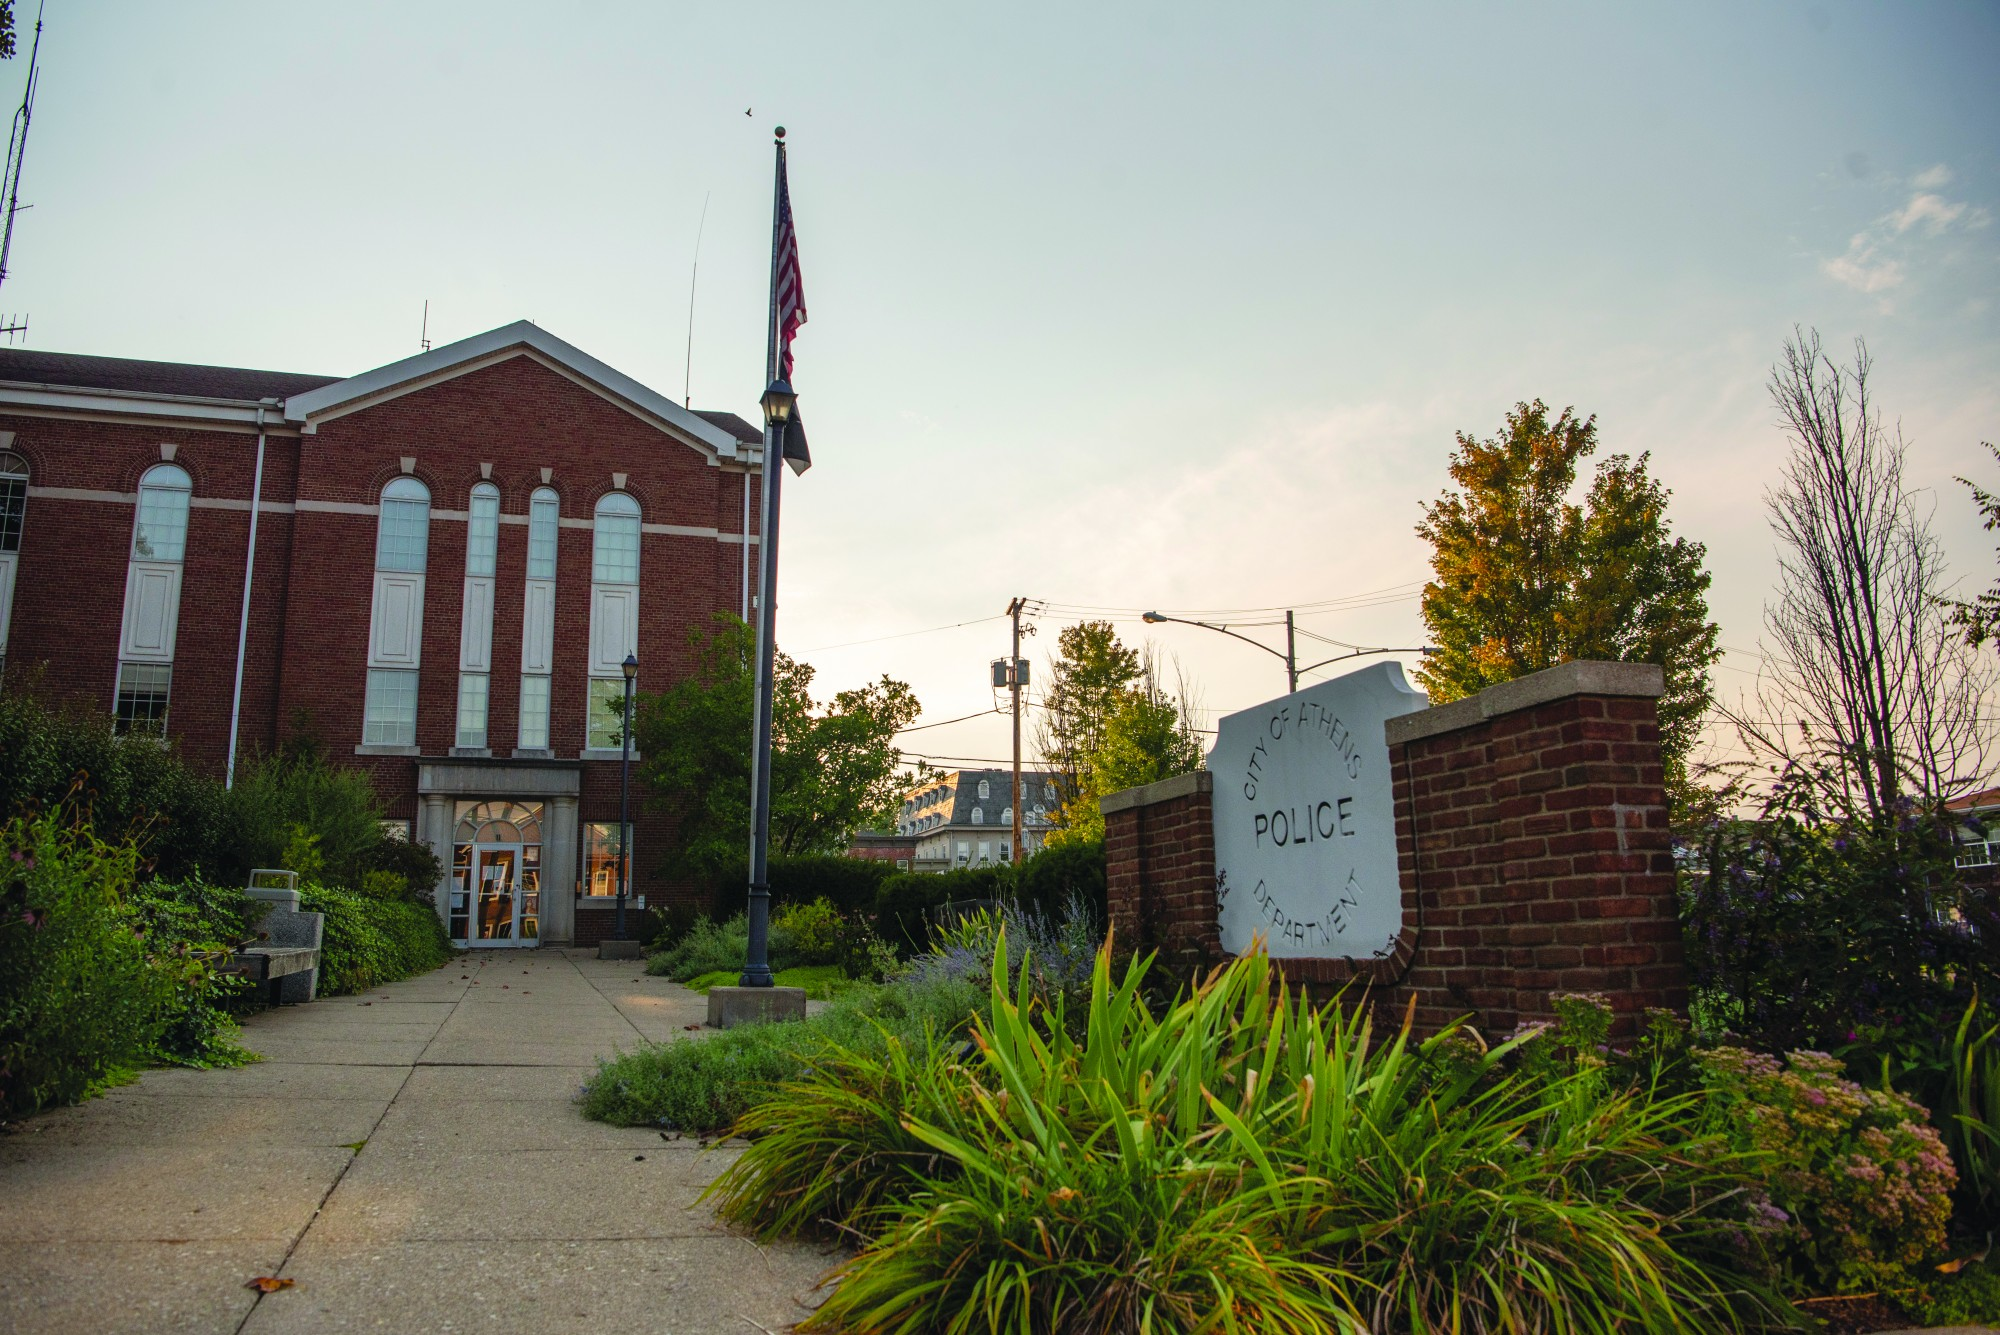 Athens Police Department located at 11 N College St in Athens, Ohio. (Kelsey Boeing | Director of Photography)